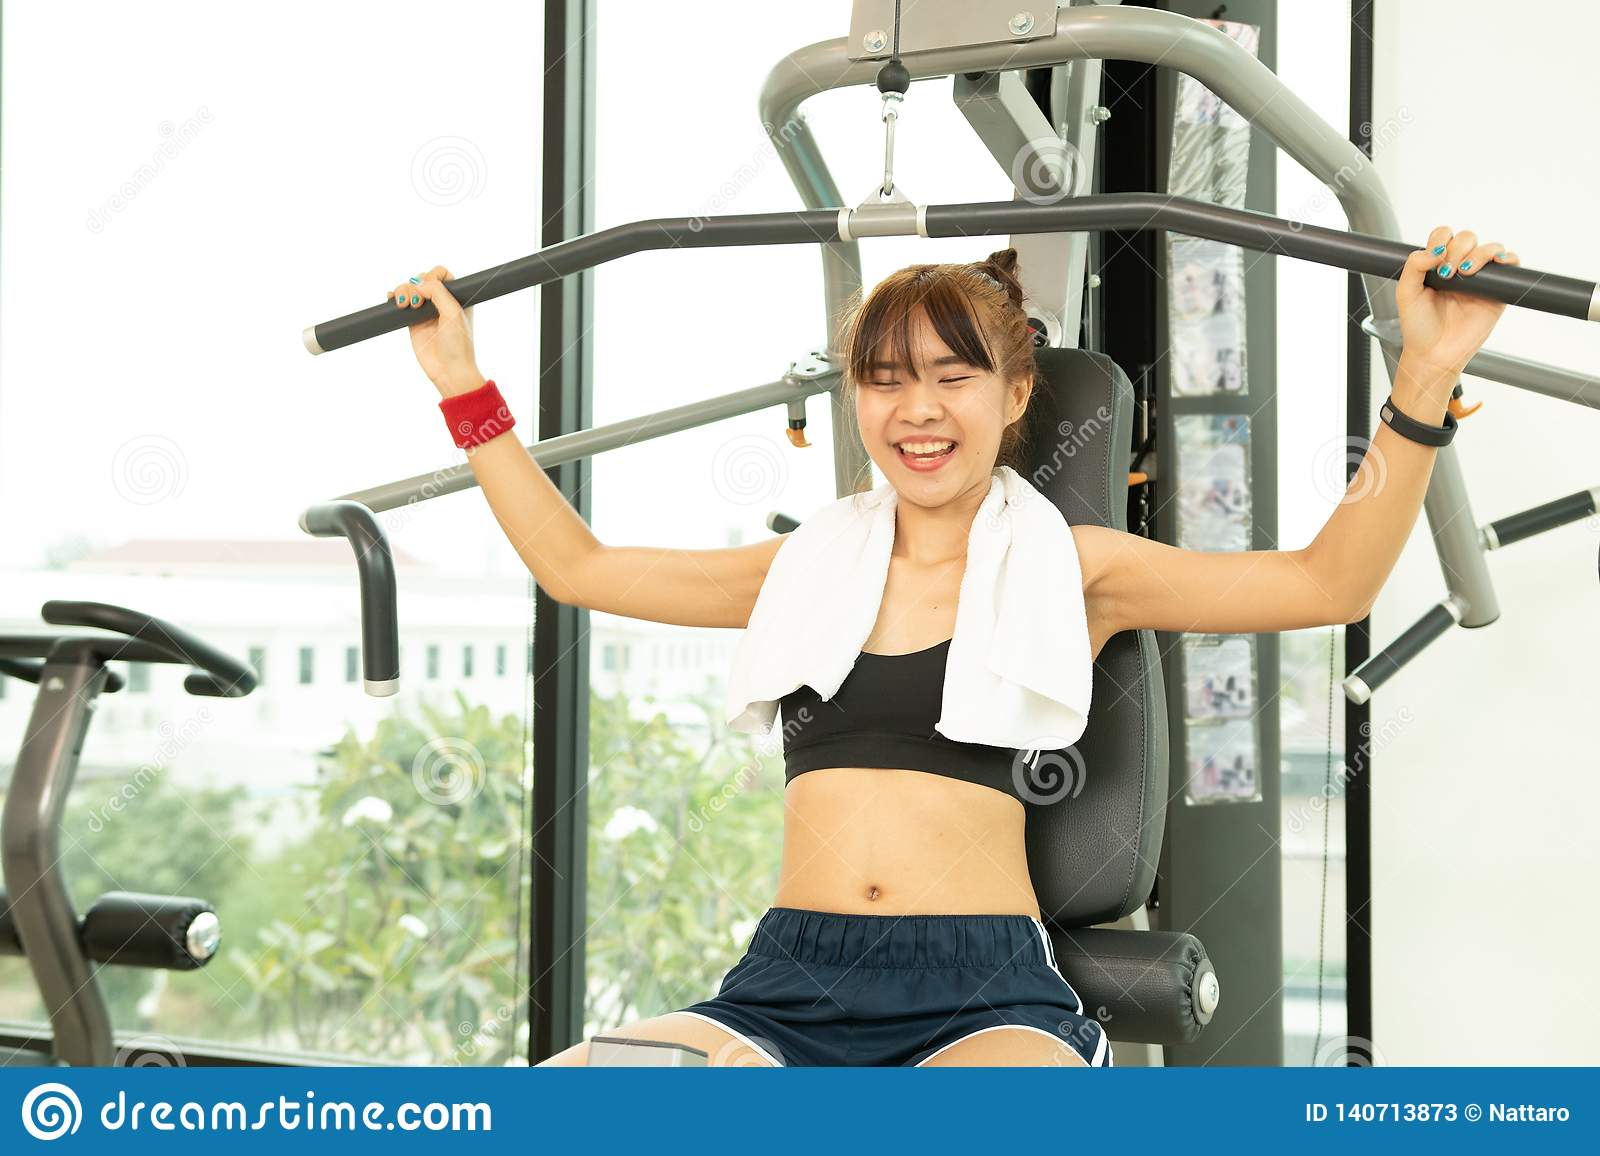 Beautiful Asians young fitness woman lifting barbell. Sporty woman lifting weights. Fit girl exercising building muscles. Fitness